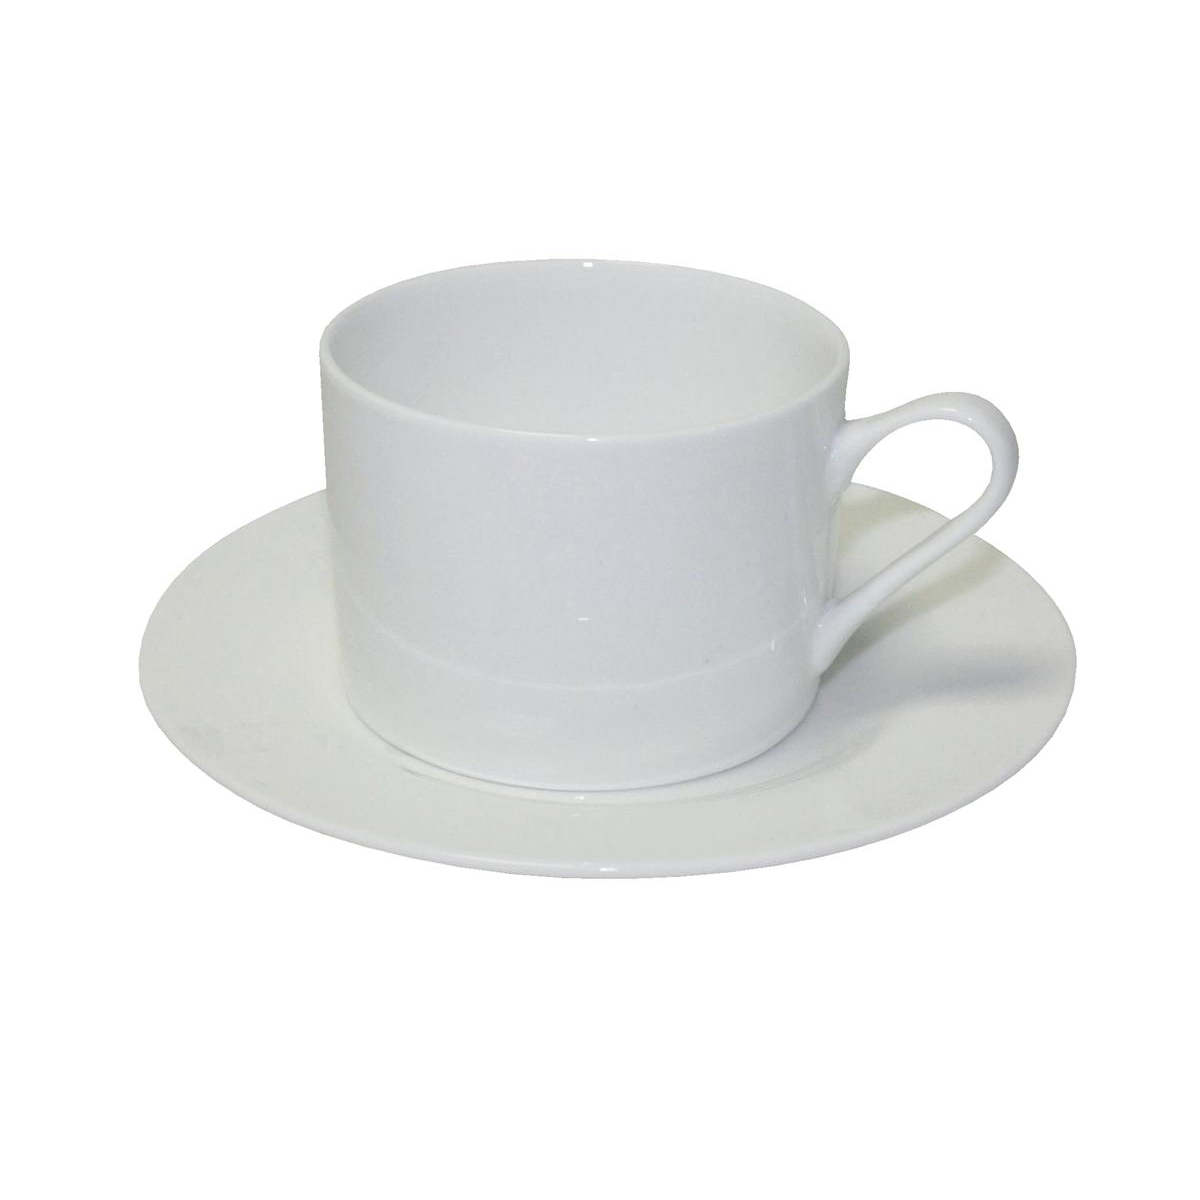 5 Star Facilities Tea Set Fine Bone China 6 Cups 6 Saucers White